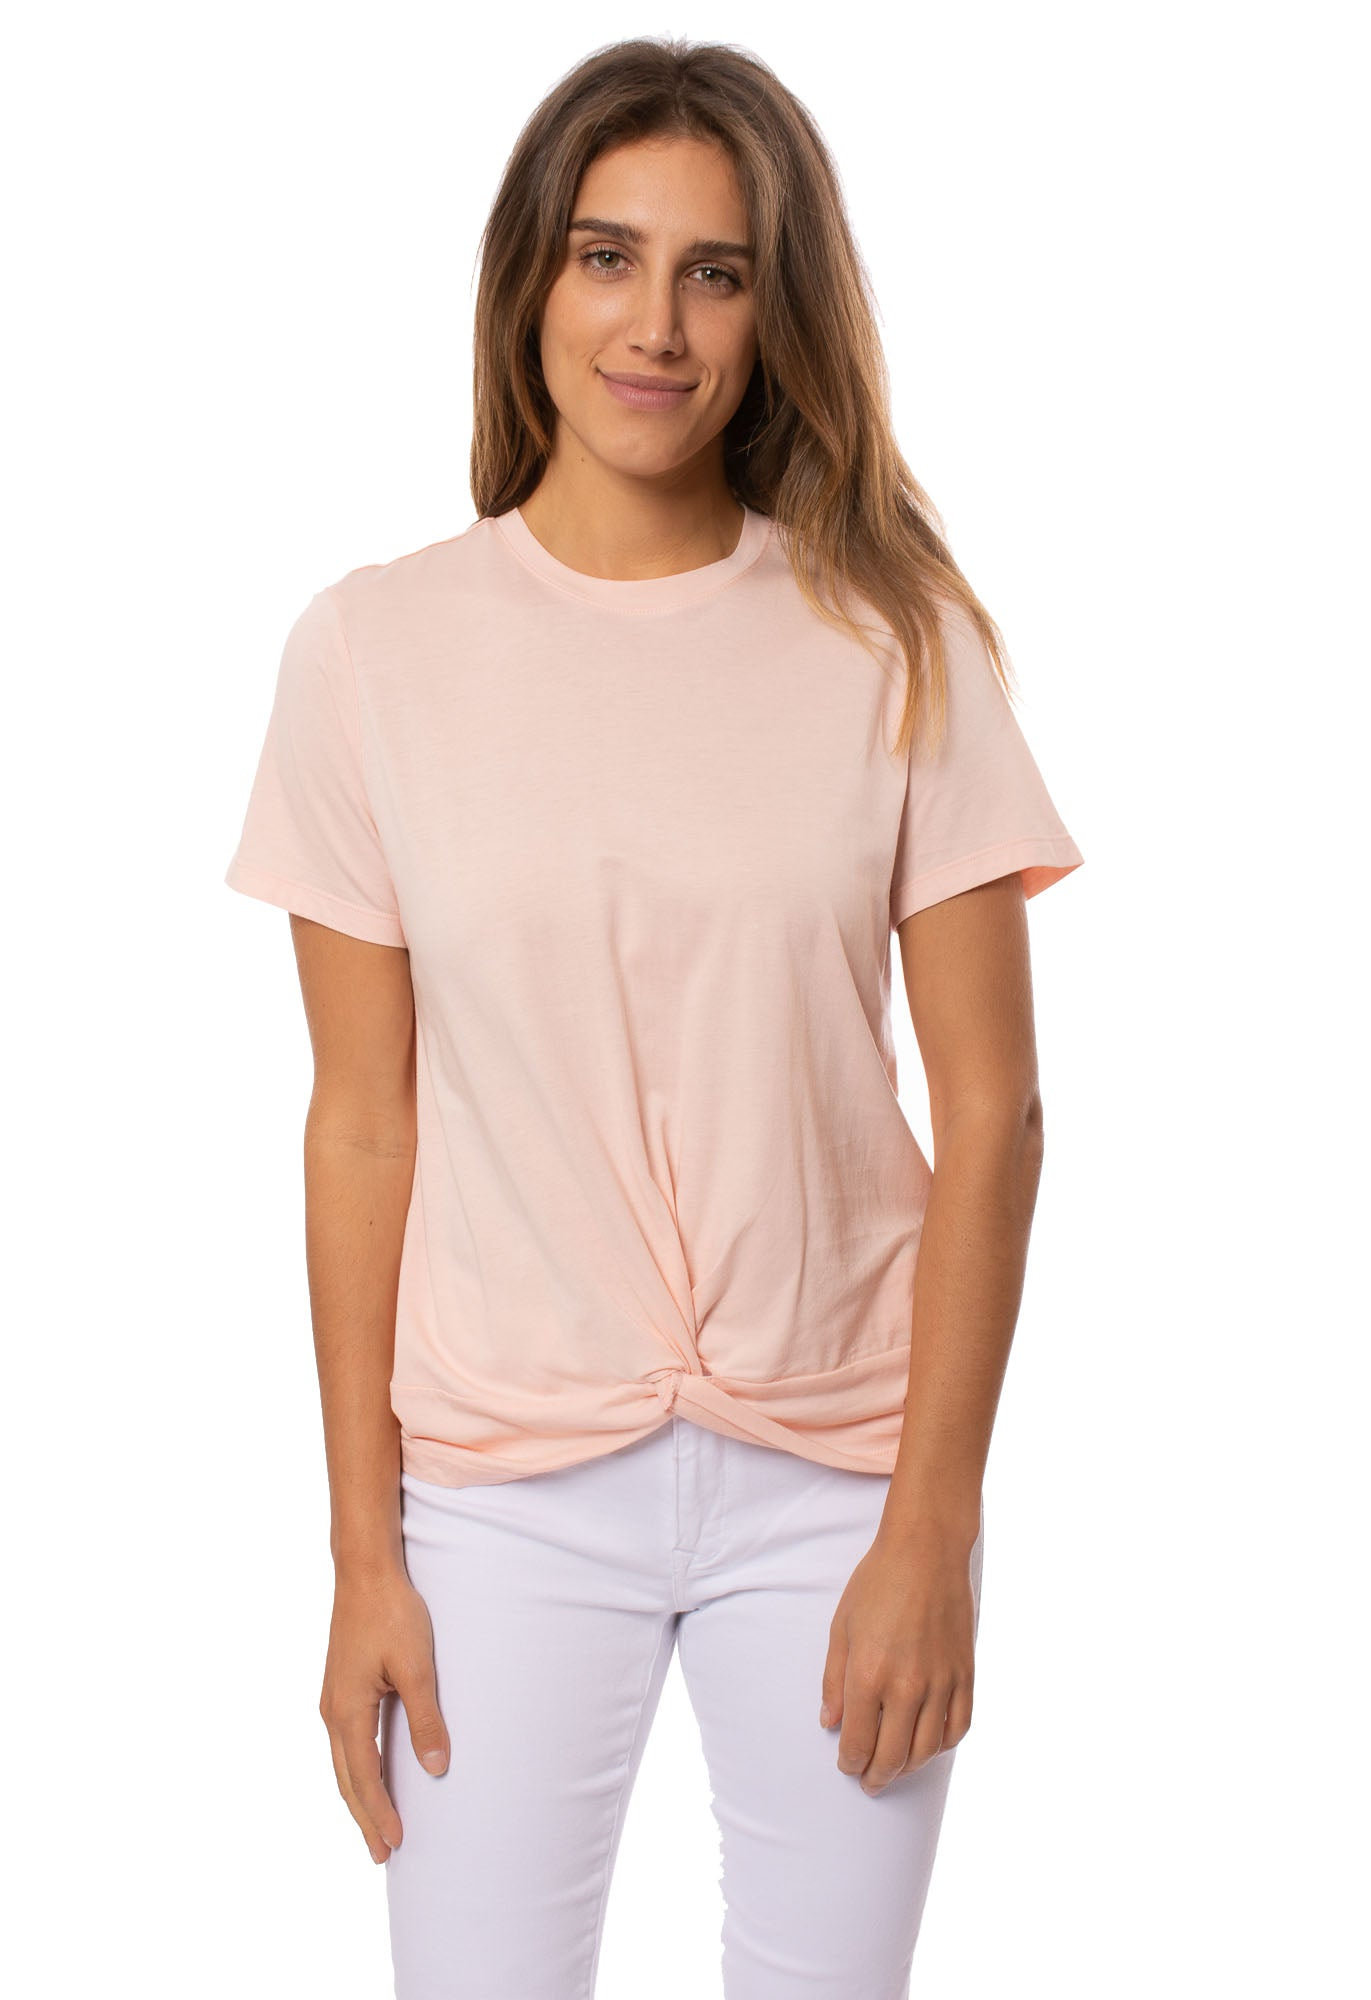 Velvet Heart - Lizette Shirt (KVY-22449, Peach)